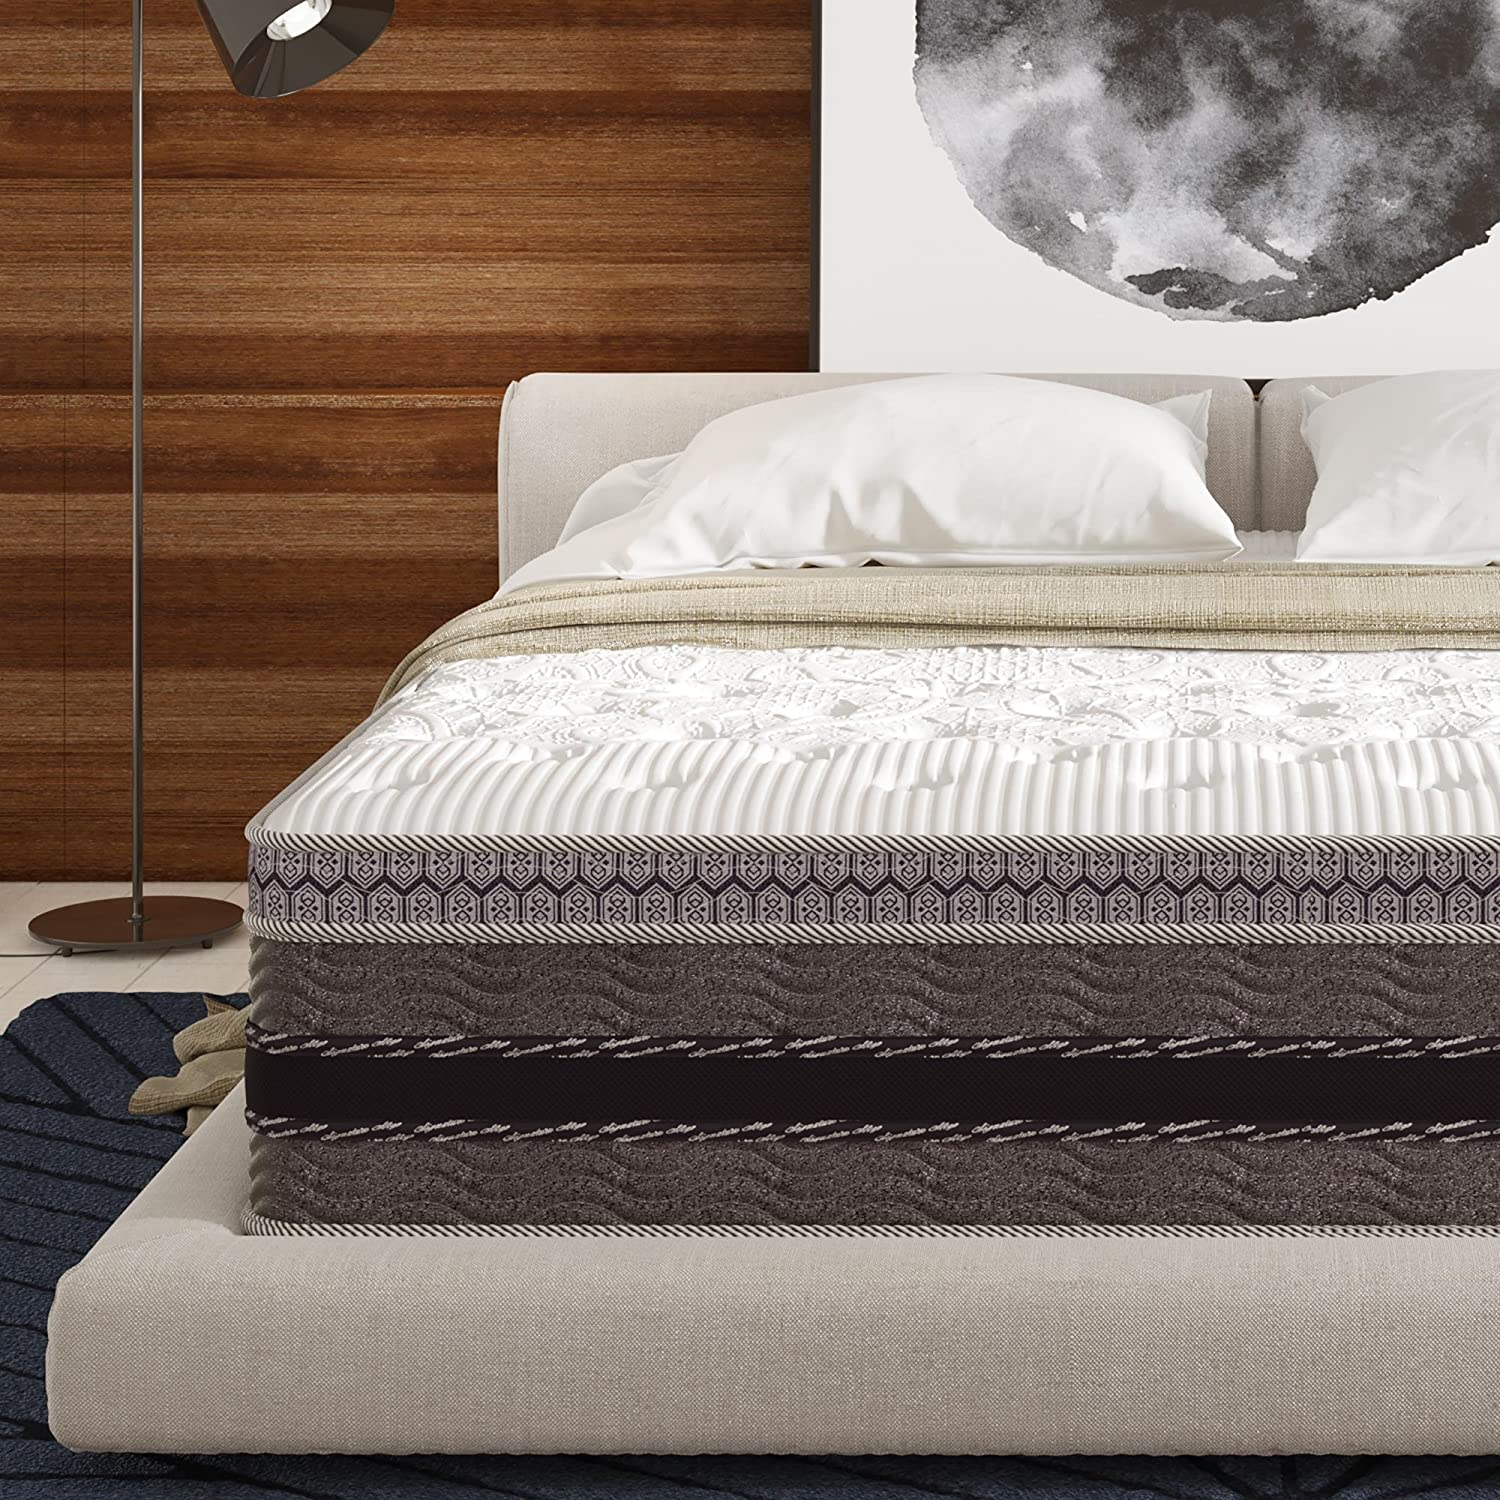 "Signature Sleep-Justice 14"" Premium King-Size Memory Foam Mattress"